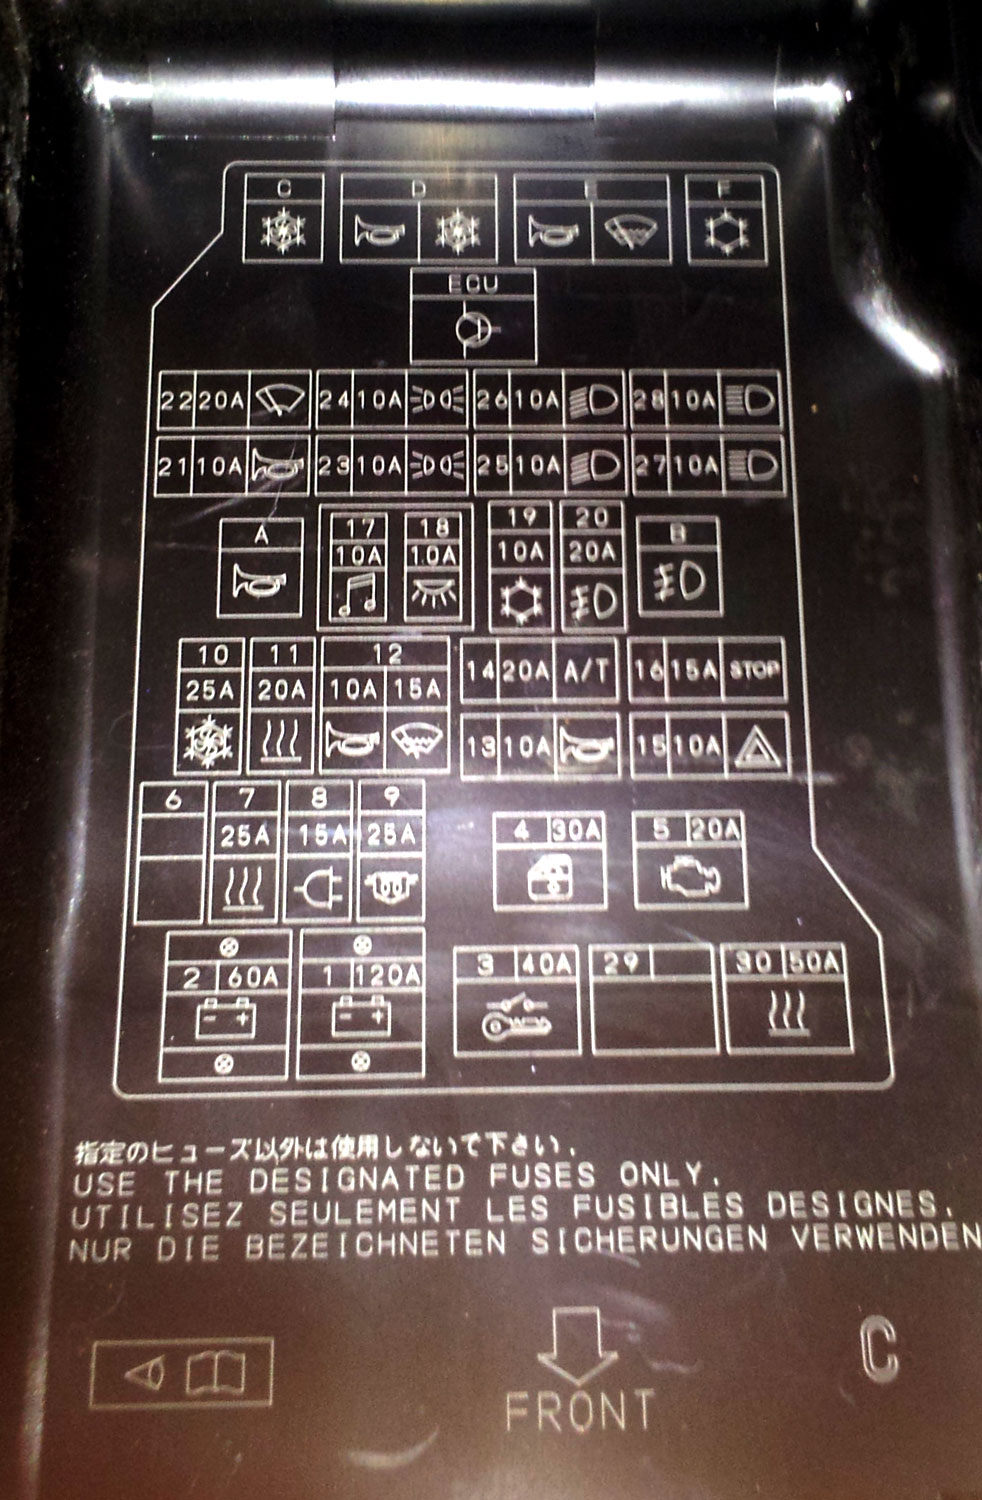 Mitsubishi Mirage 1997 Fuse Box Diagram Wiring Libraries 2001 Montero Sport Diagrams Scematic02